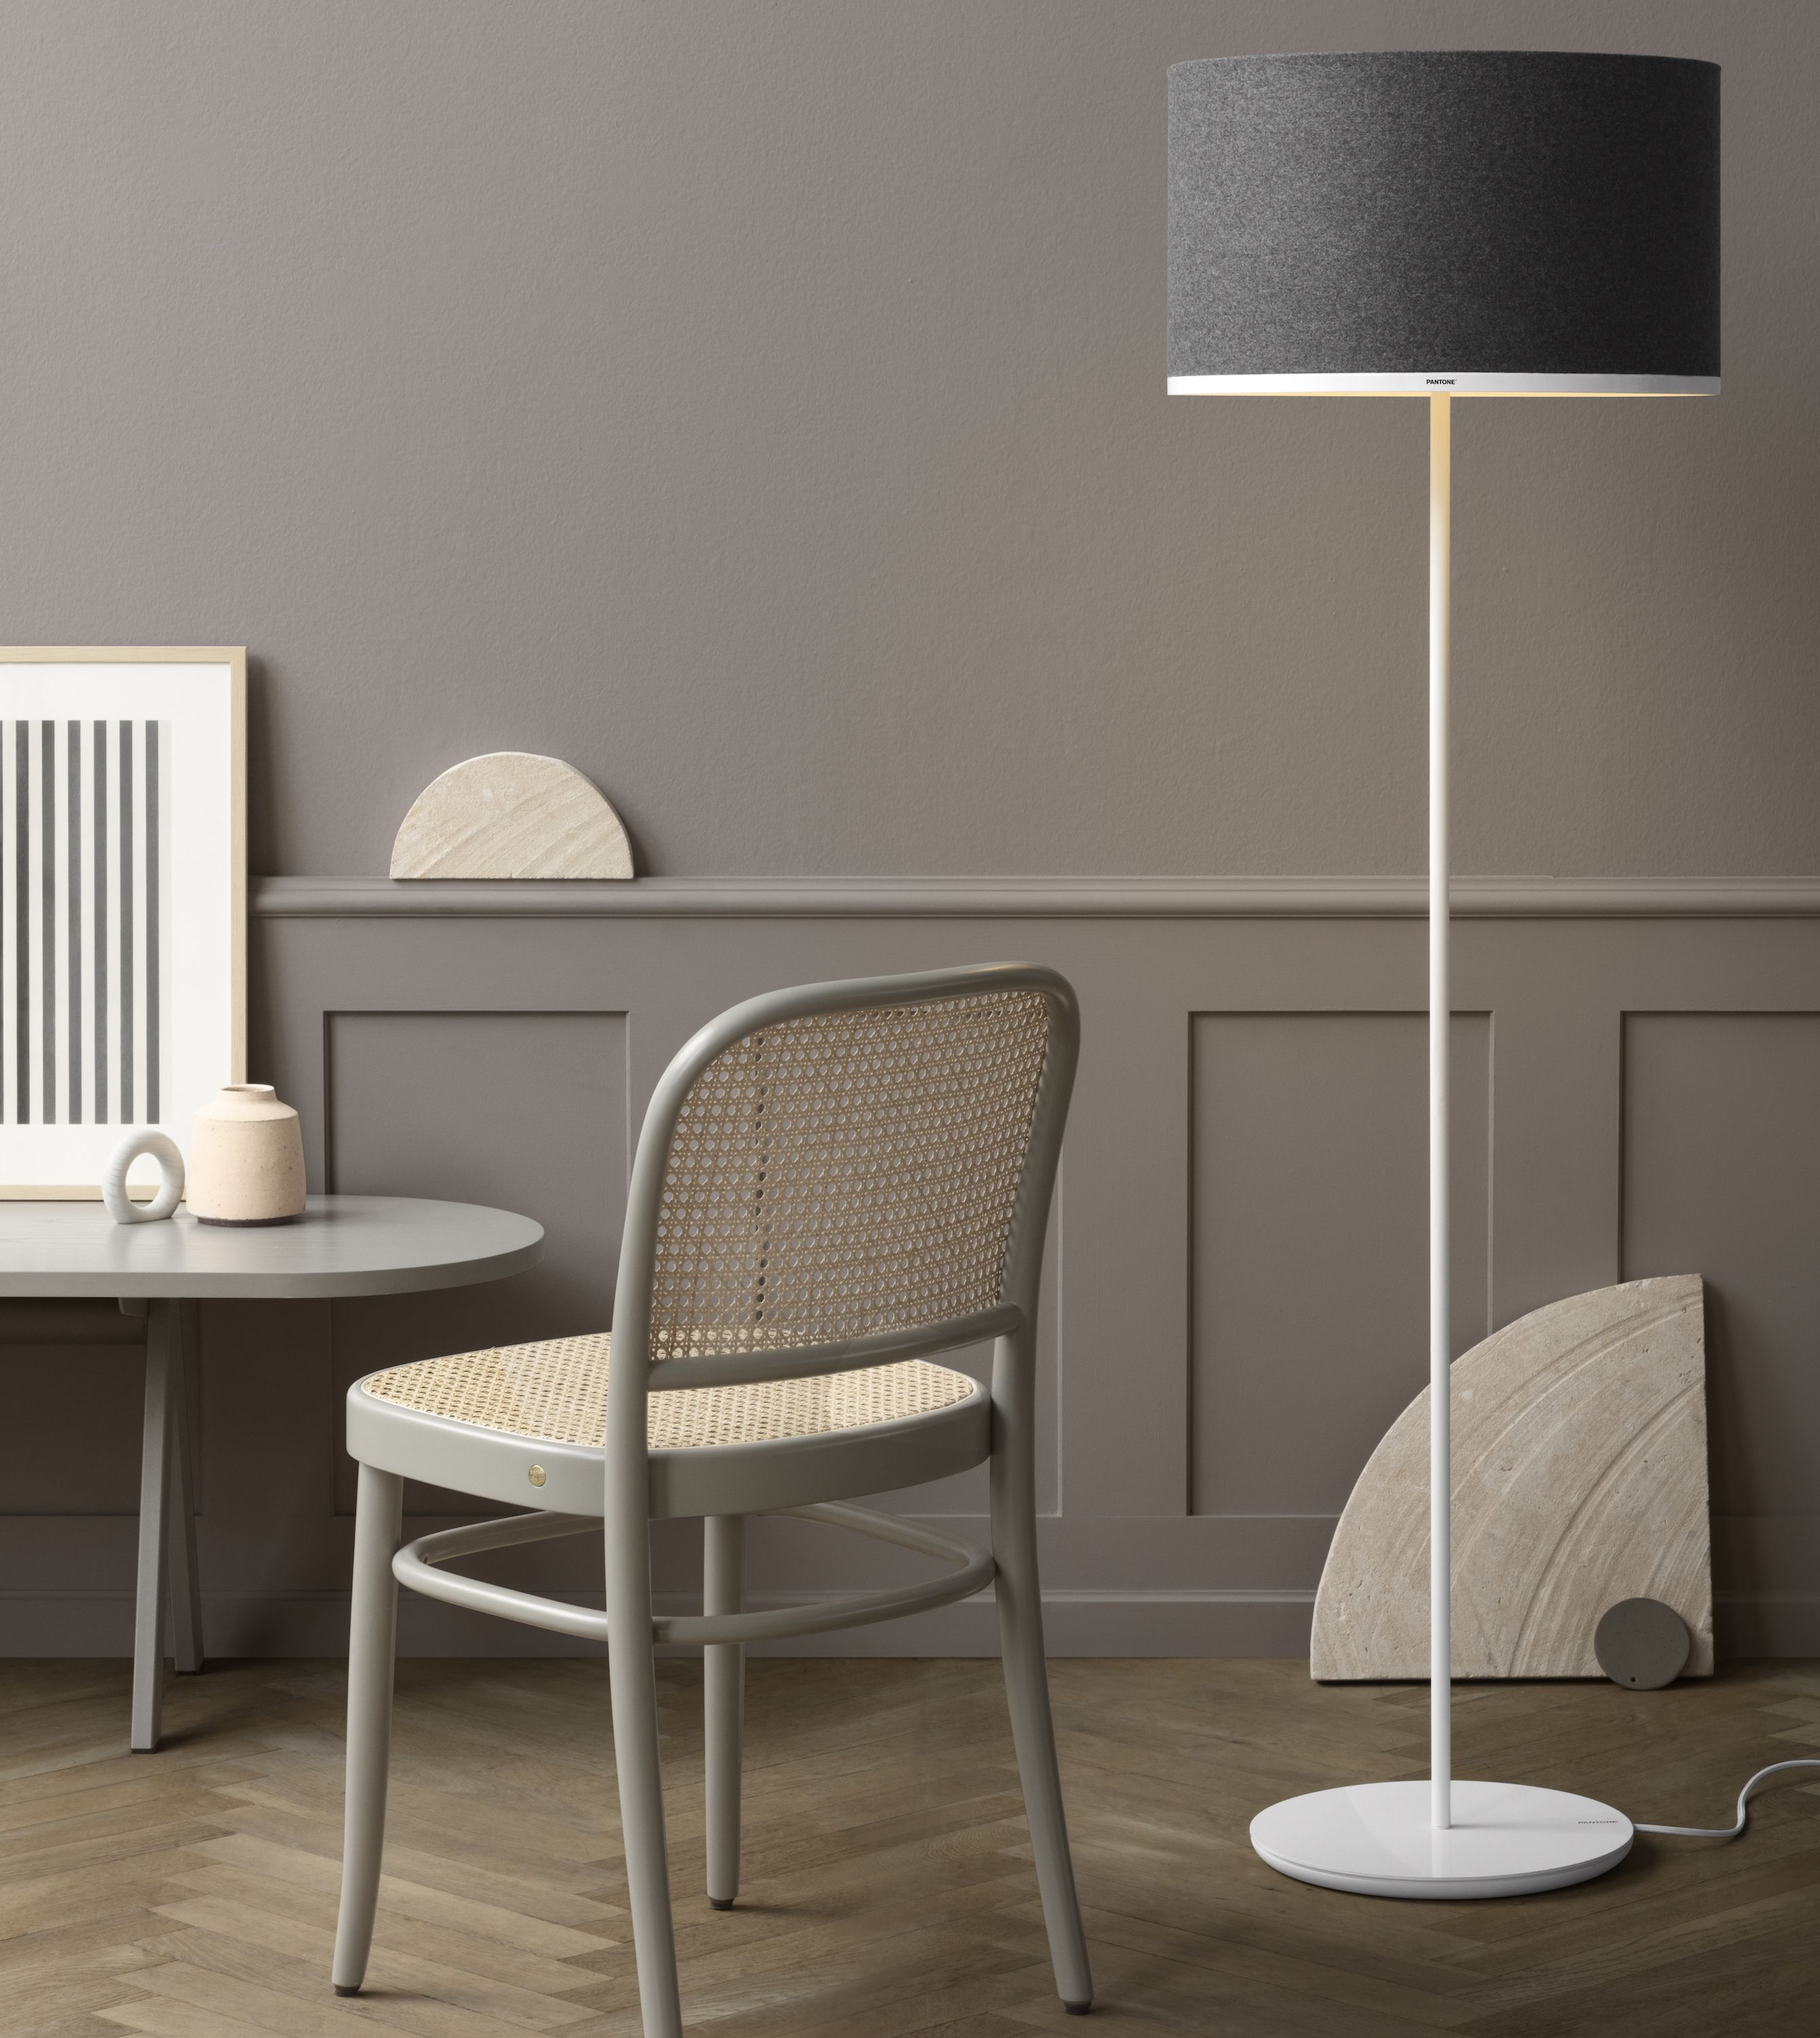 The Antares floor lamp with Sargas shade adds a sophisticated look